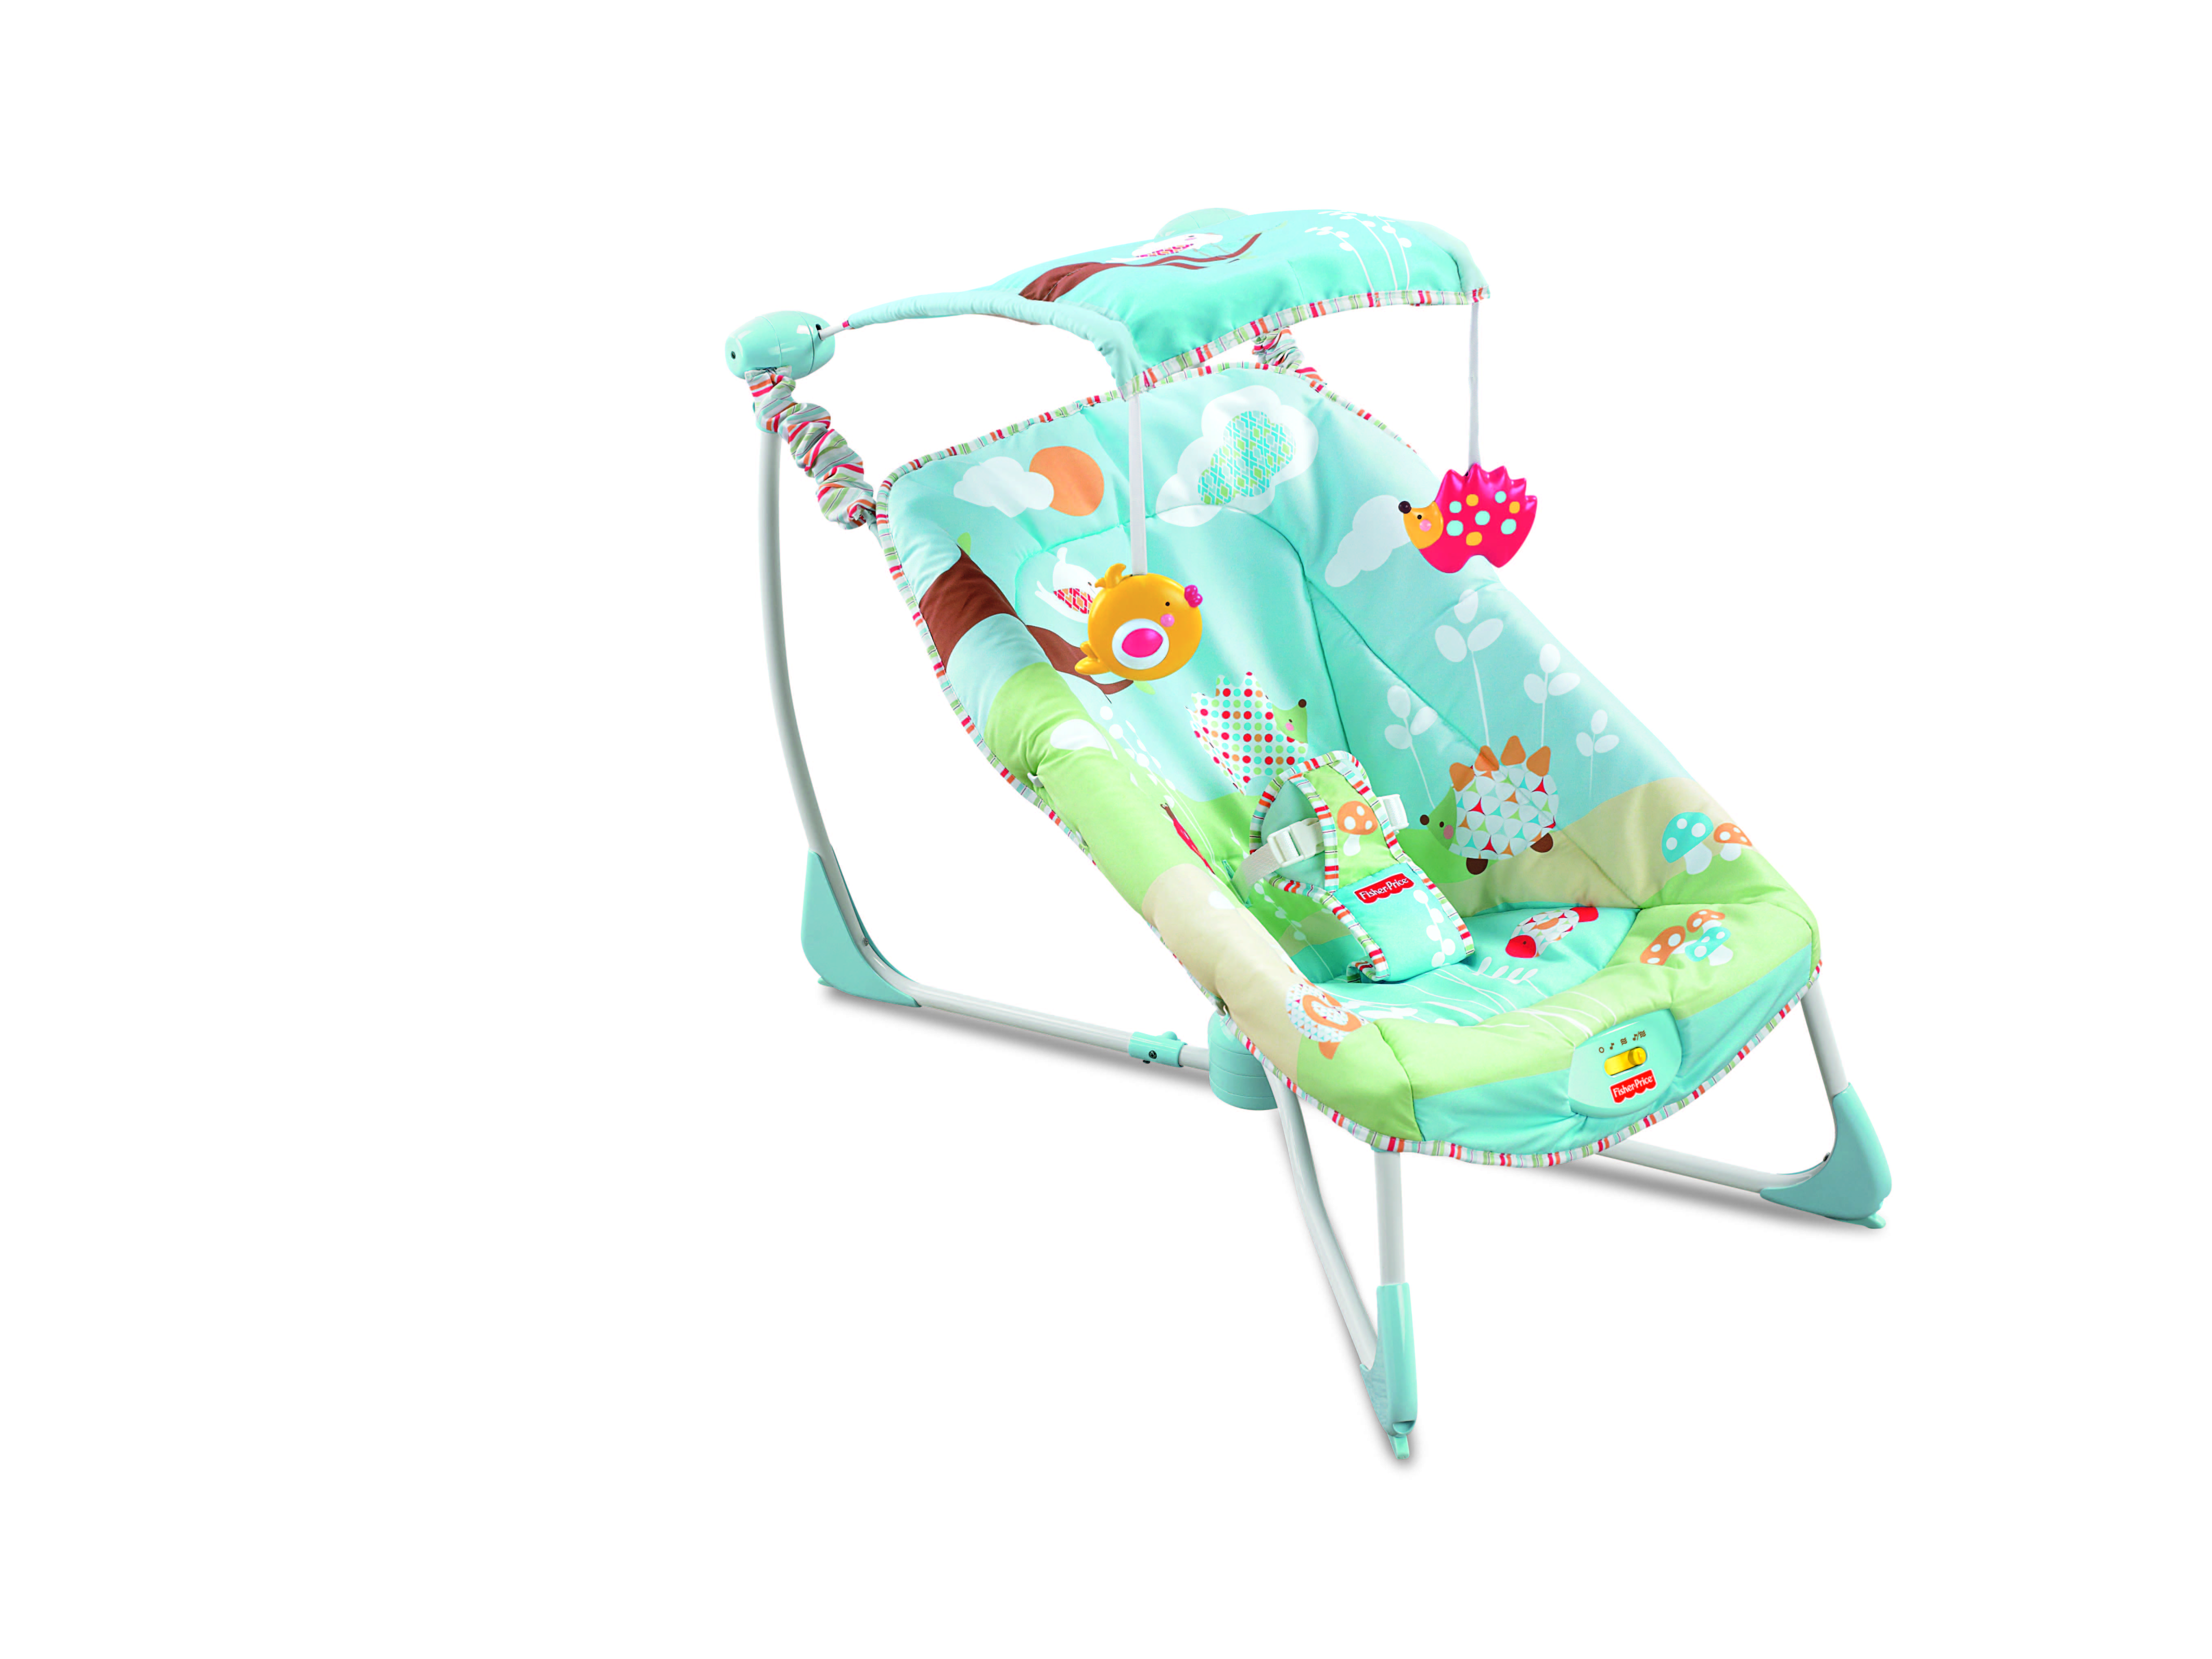 Superb img of Fisher Price: Soothe & Go Bouncy Seat – GOLD with #B01B20 color and 5436x4077 pixels